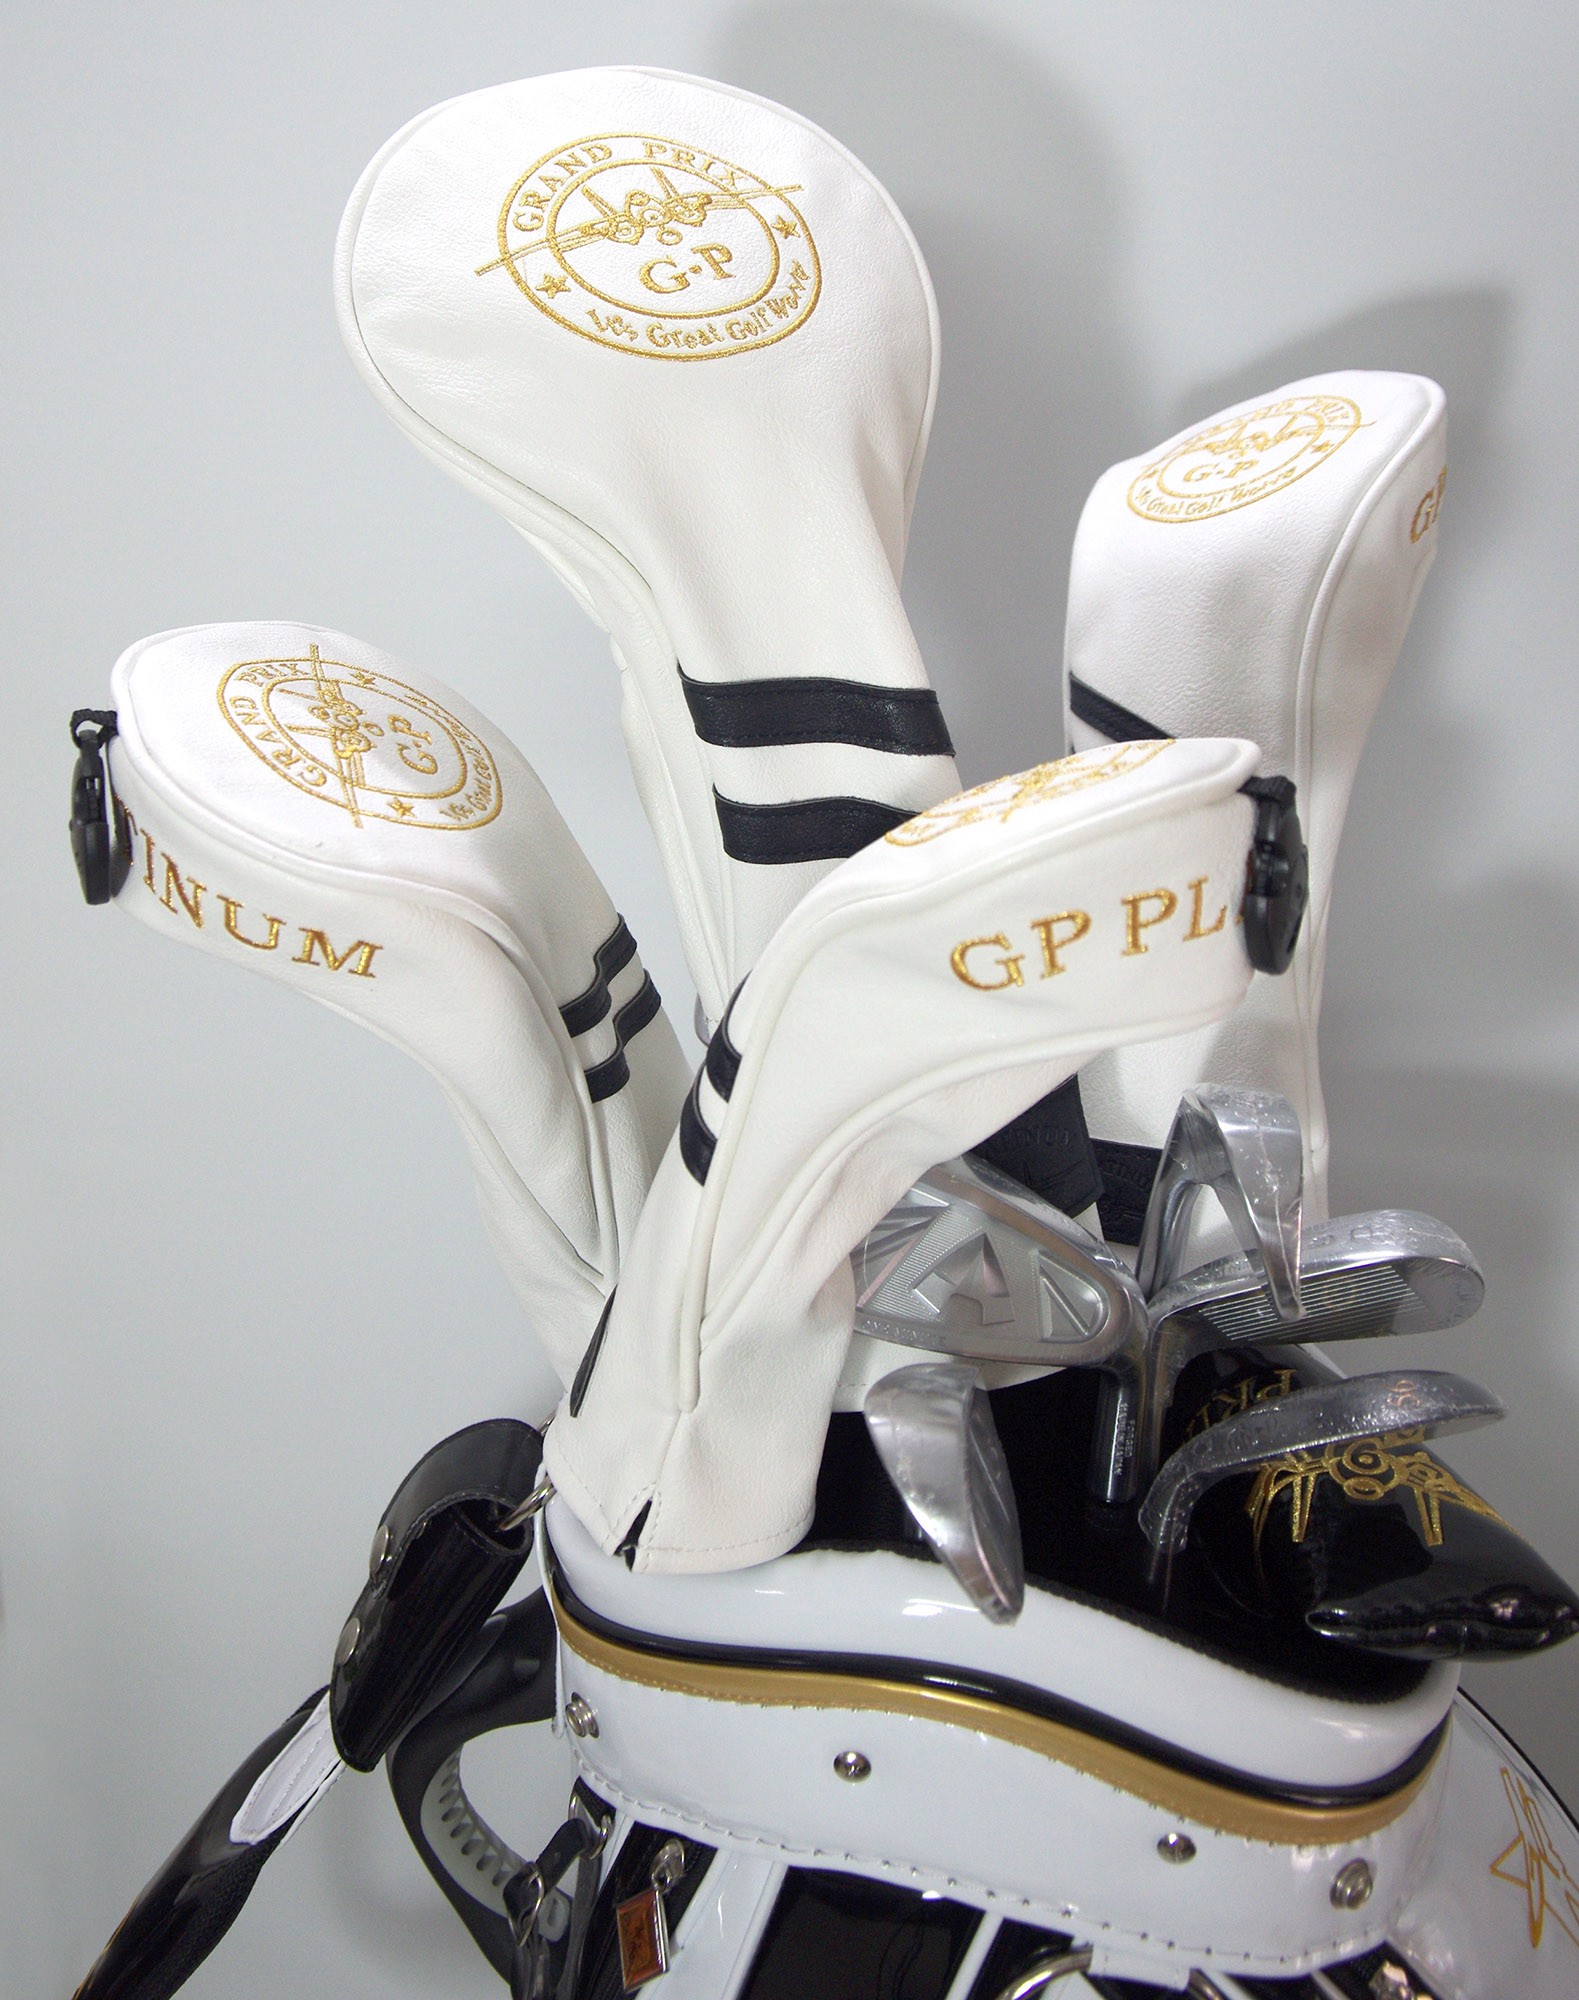 Bộ gậy golf Full set GP MAX ONE MINUTE G57 (12 gậy + bag) | Grand Prix